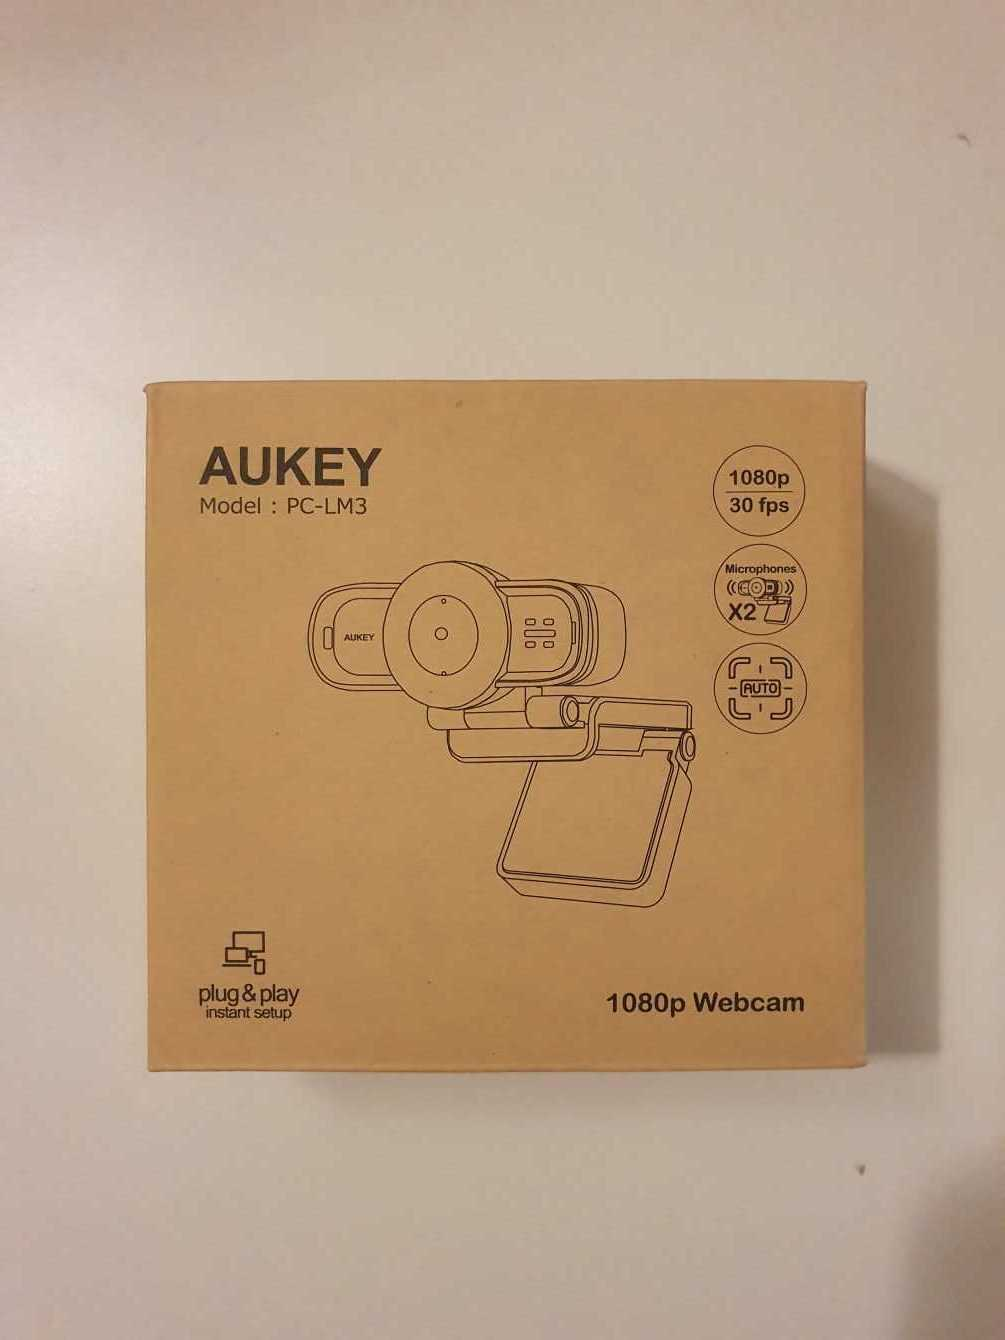 (Updated) Aukey PC-LM3 Review: Full-HD Webcam